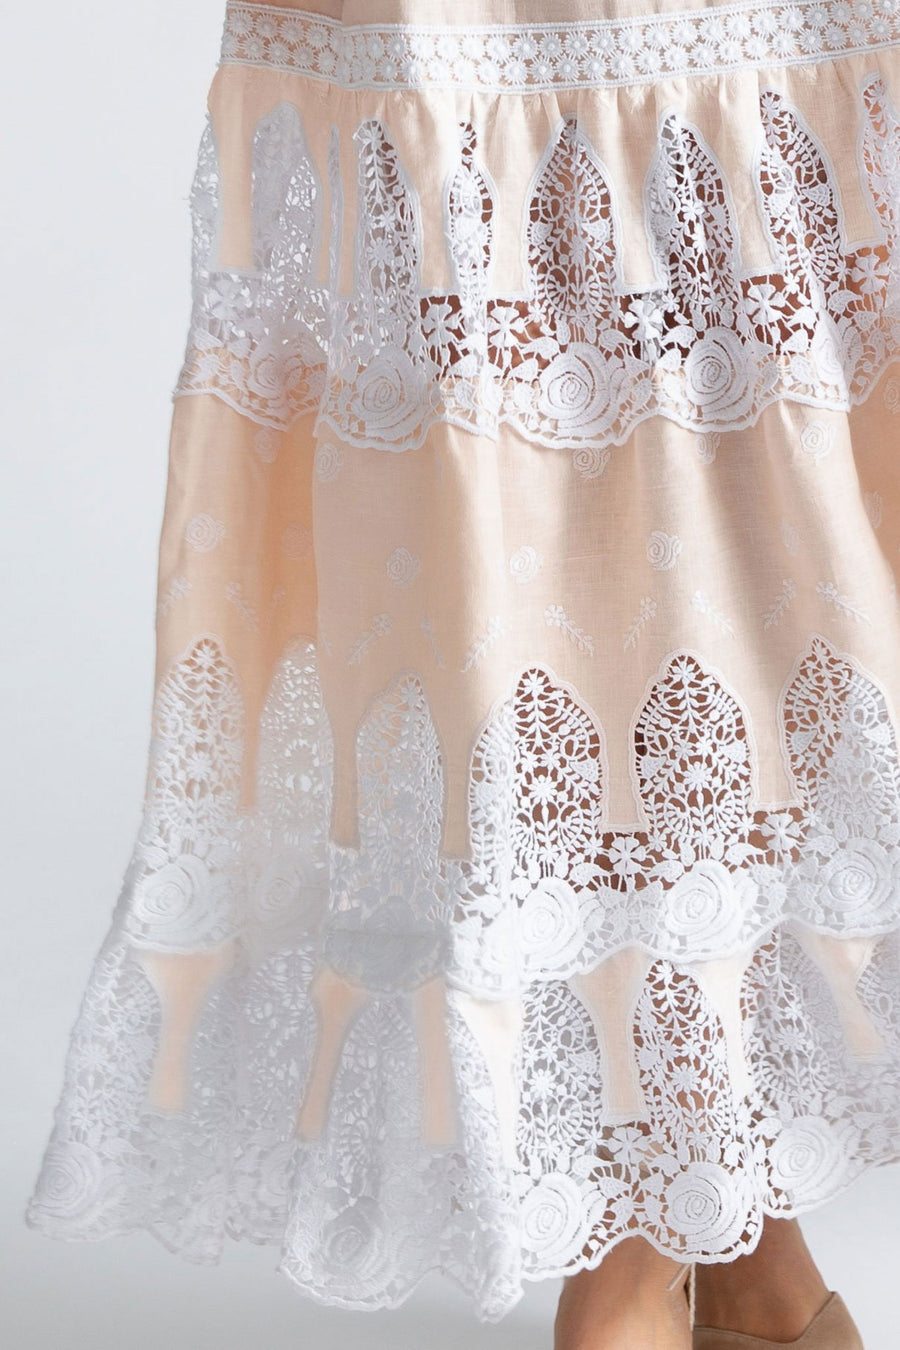 This is a detail photo of a linen and lace gown with 3 tiers of lace embroidery at the bottom. The detail of lace here shows the floral designs and honey color of the linen on the dress.